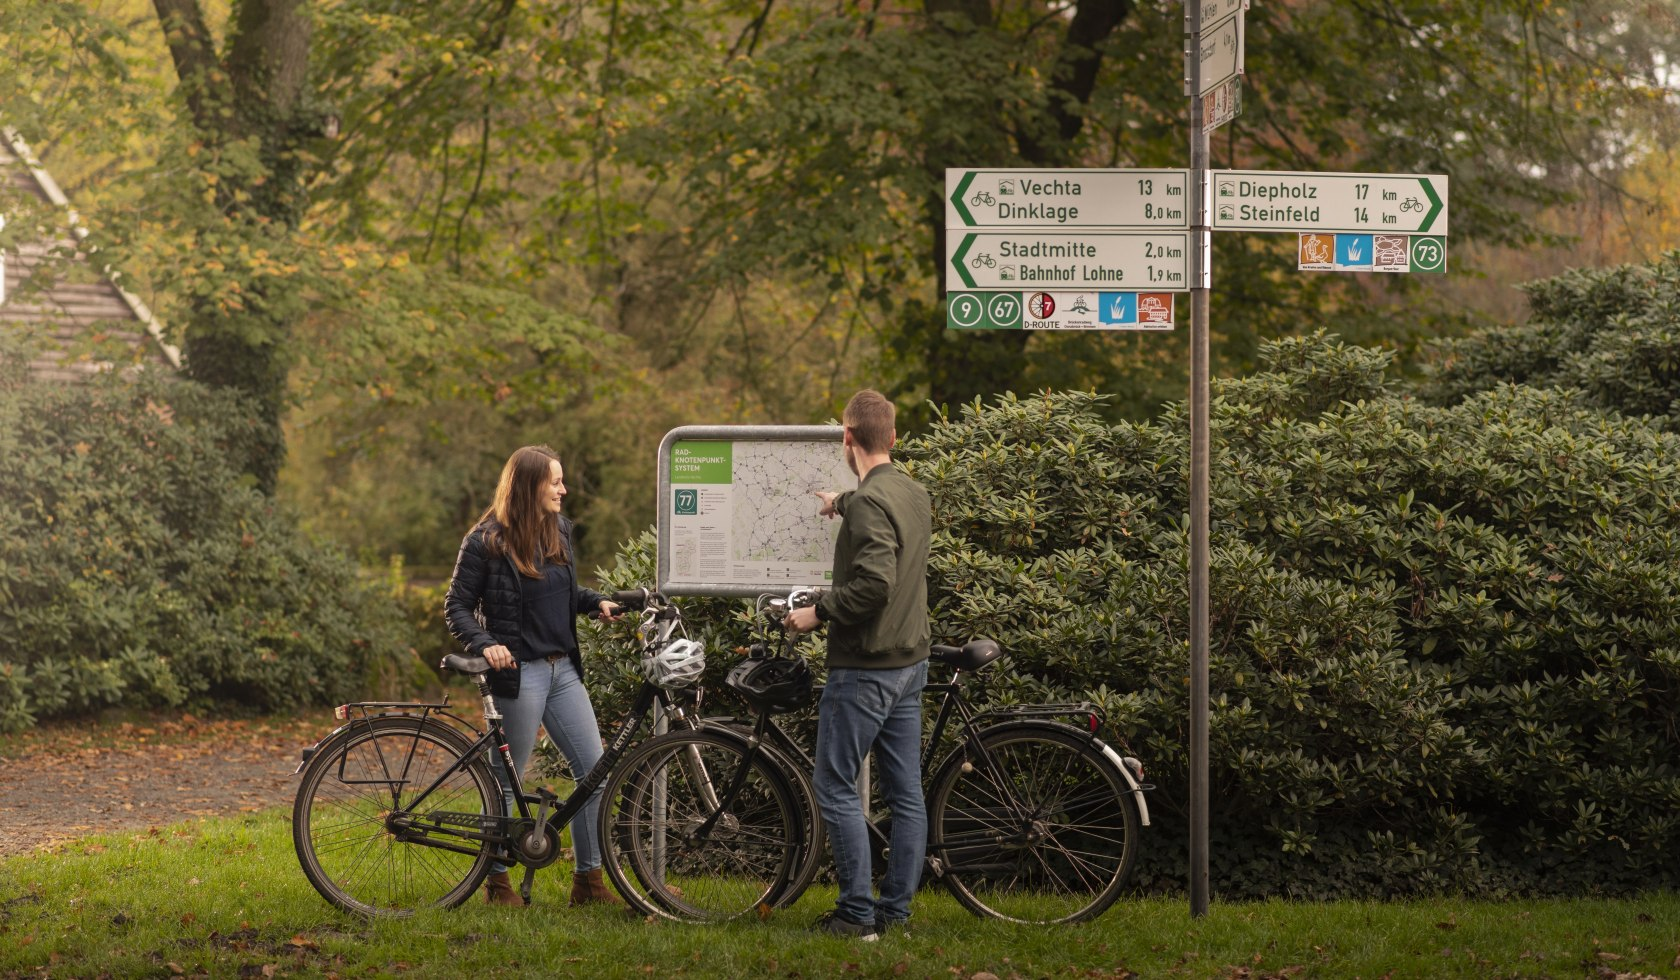 Cycling by numbers in Vechta